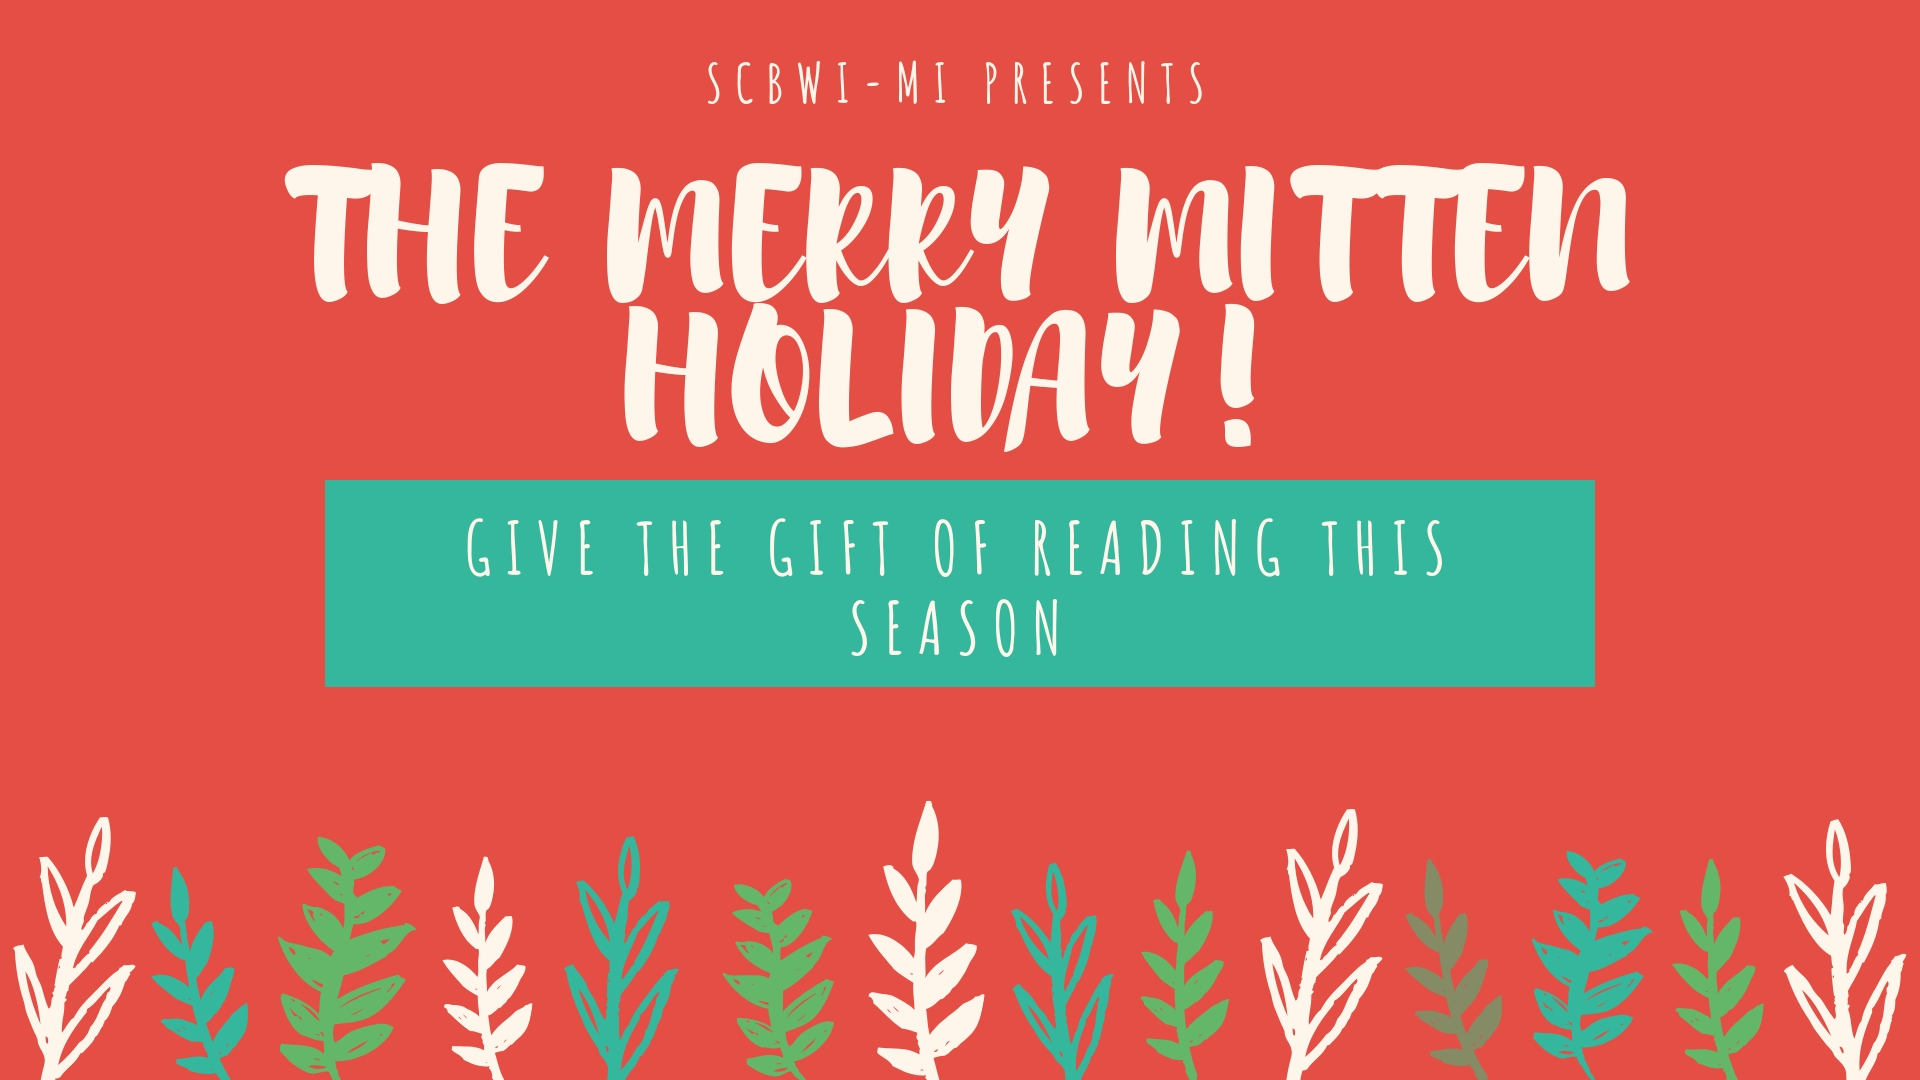 It's time for our 3rd annual Merry Mitten Holiday! What better gift to give than a book from a local author or illustrator? We are proud to work with some of our favorite independent book stores again this year and hope to support them with these events as much as they support us all year round. So, bring the family out to any of these events and pick up a signed book or two! November 10th from 12:00-3:00 at Kazoo Books: Meet Leslie Helakoski and Buffy Silverman. December 1st from 1:00-3:00 at Nicola's: Meet Lisa Wheeler, Maria Dismondy, Lisa Rose, and Supriya Kelkar. December 2nd from 12:00-5:00 at Bookbeat (as part of their GESU fundraiser): Meet Herbert Wong Lee, Patrick Flores-Scott, Gin Price, Jodi McKay, Kristin Lenz, and Jean Alicia Elster. December 8th from 12:00-1:30 at Pages: Meet Janet Ruth Heller and Jodi McKay Hope to see you there!